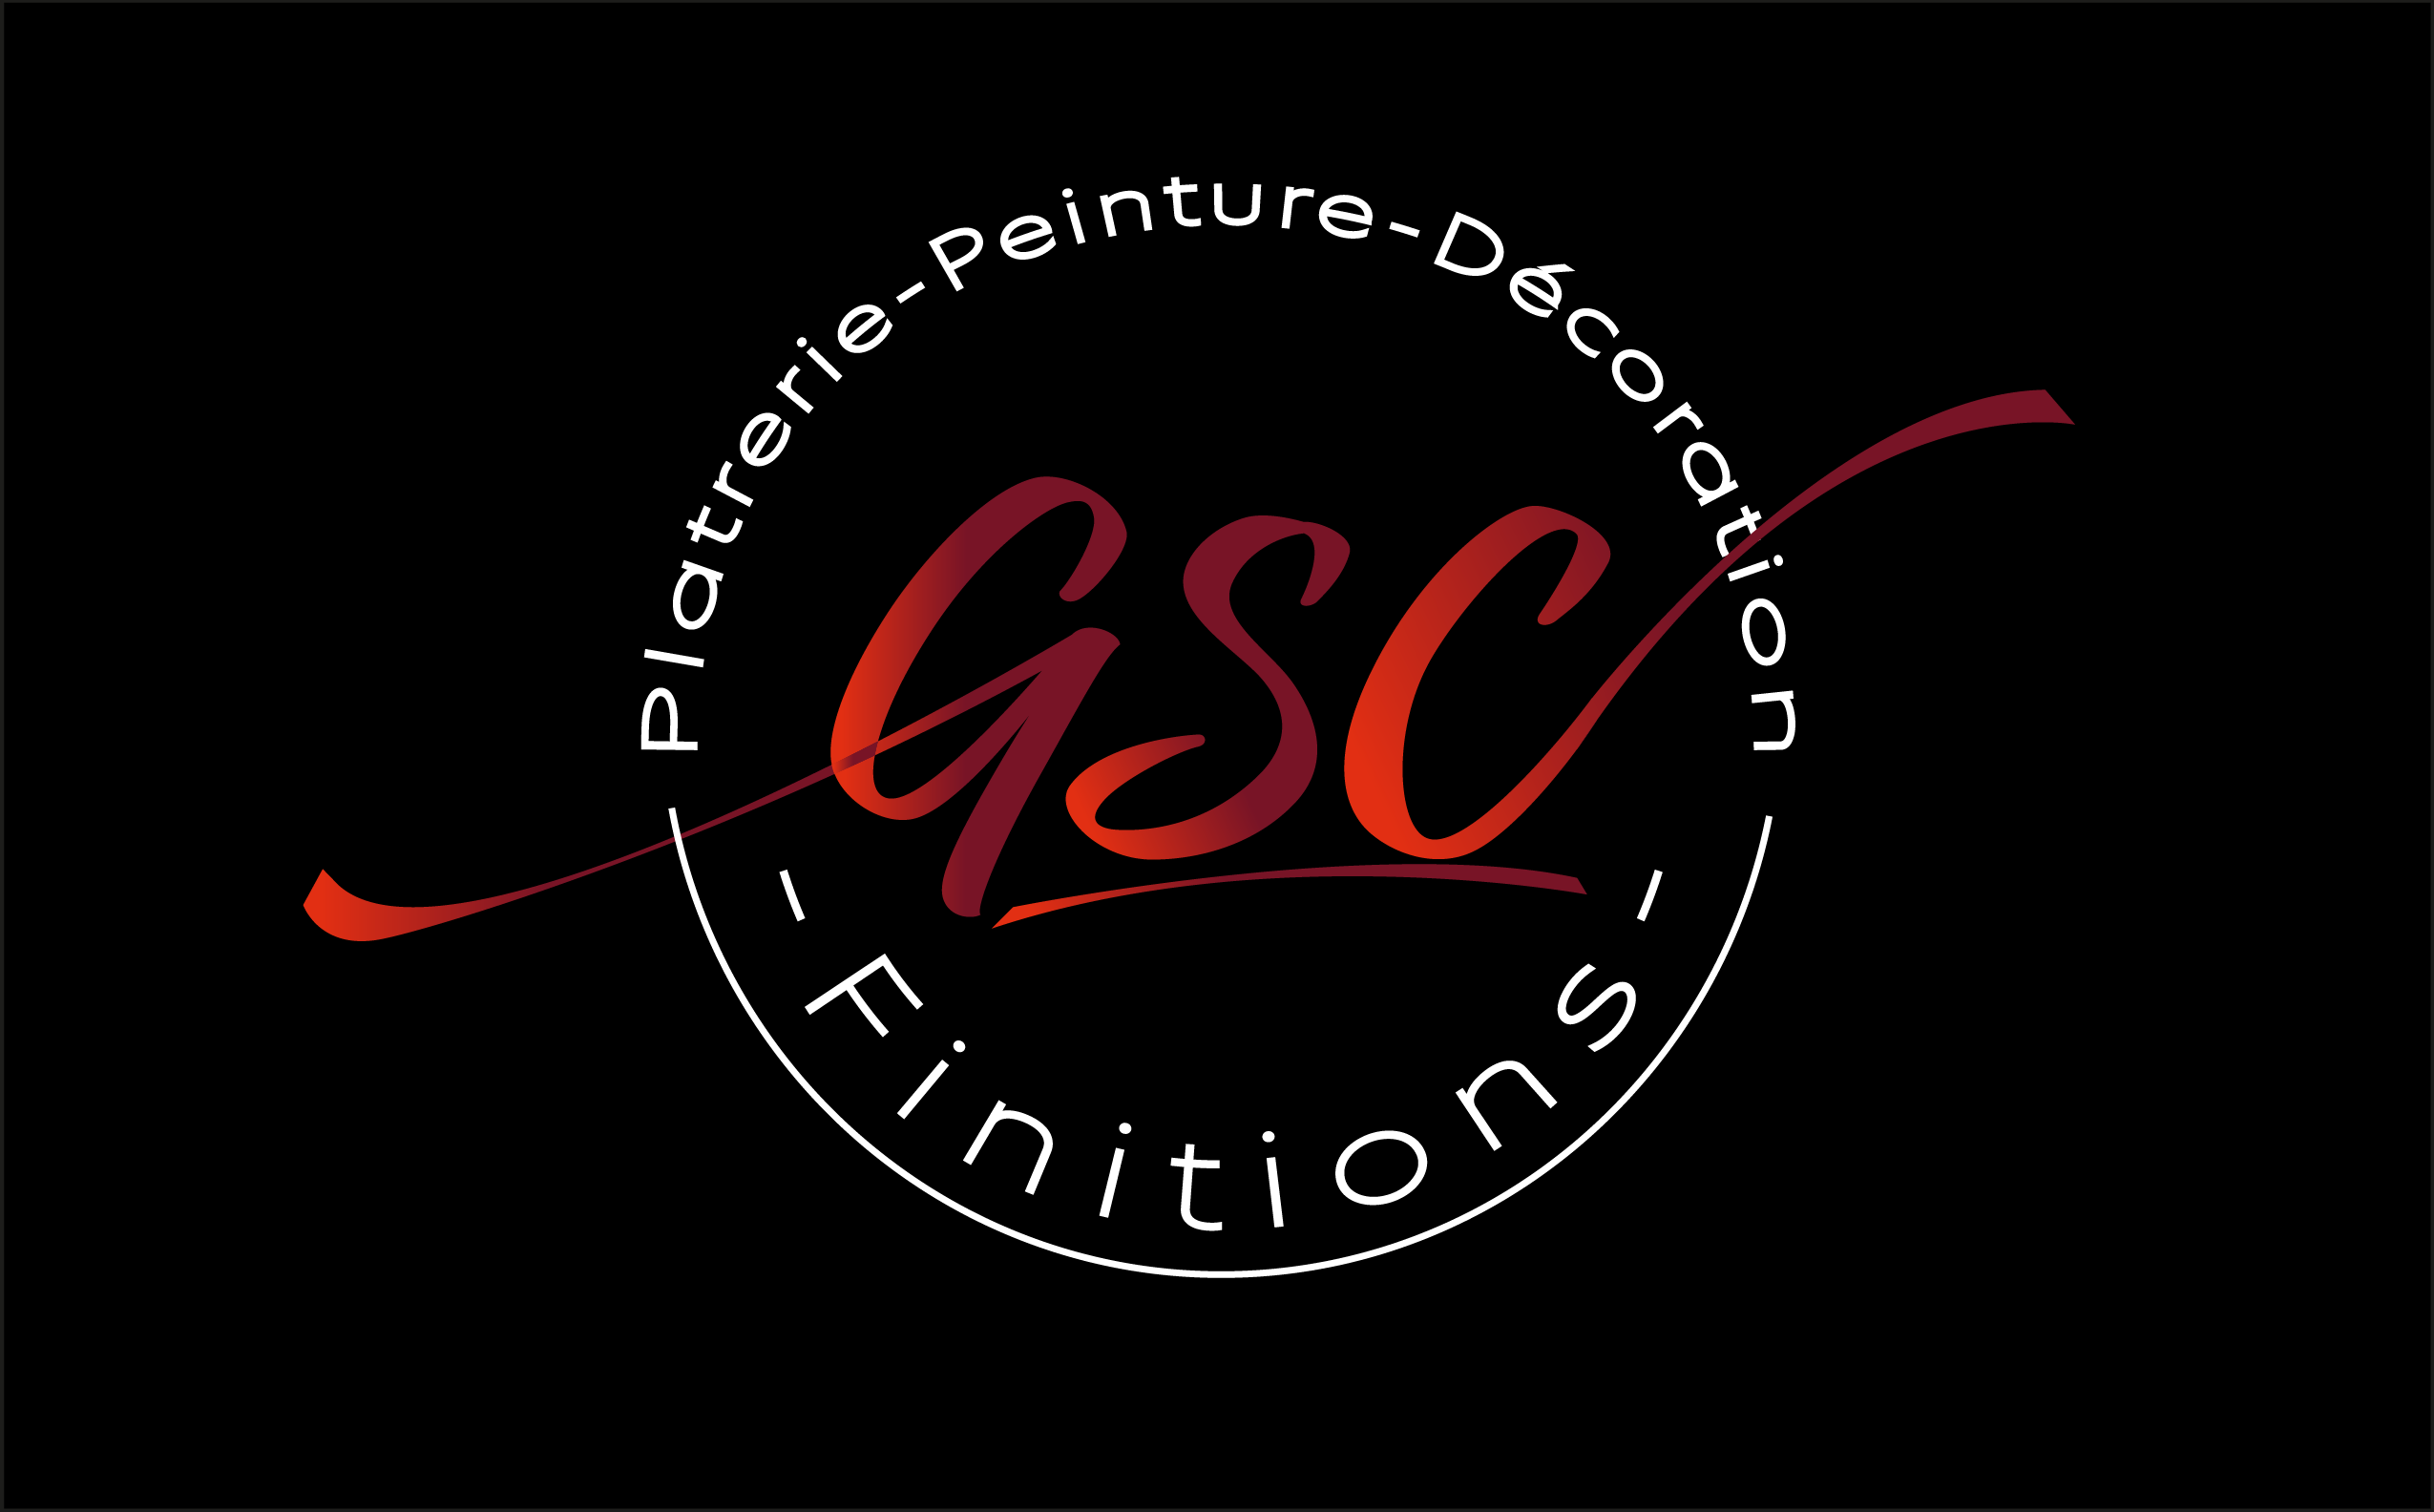 GSC finitions